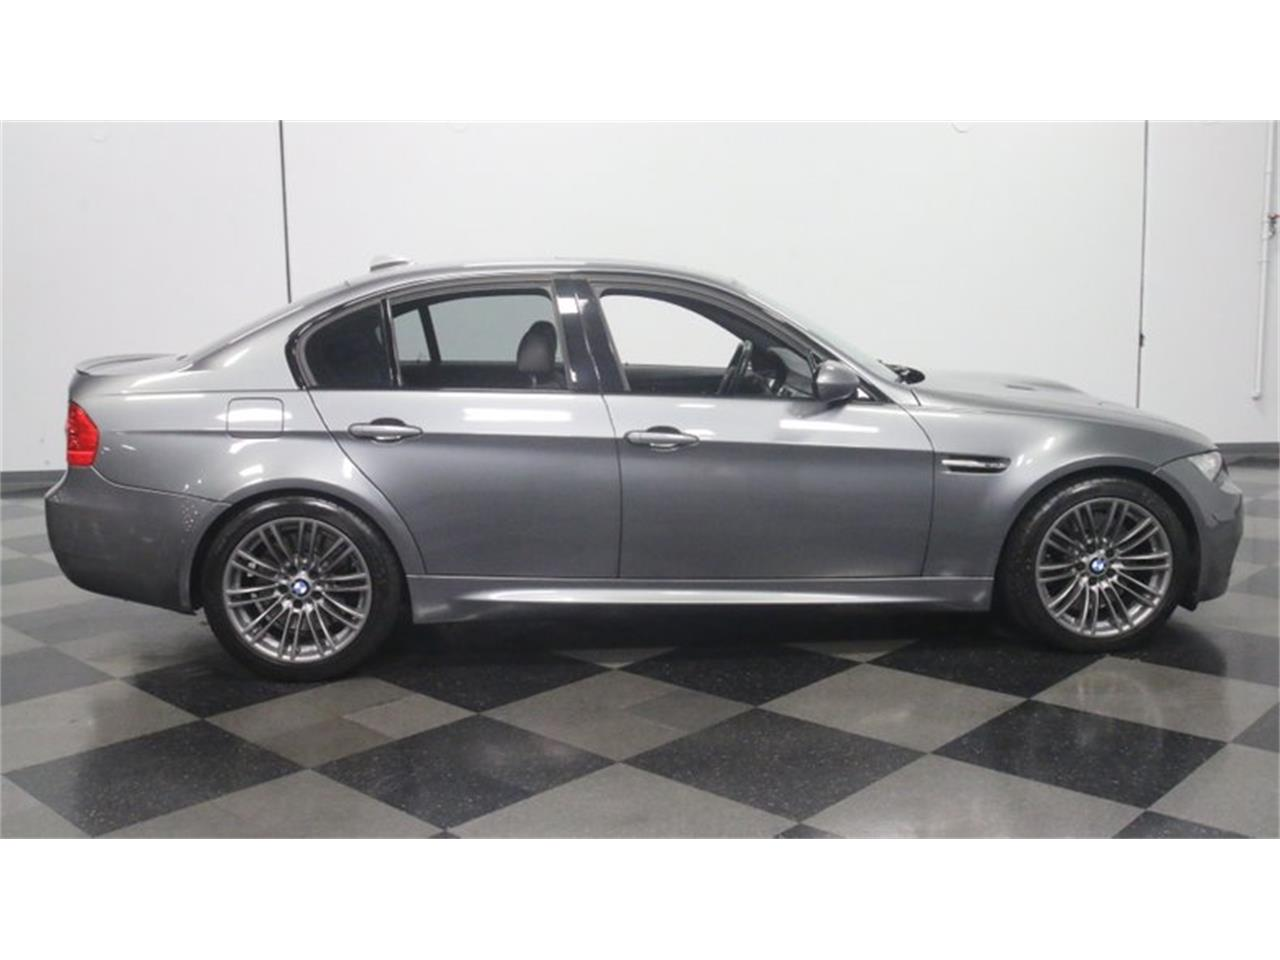 2010 BMW M3 for sale in Lithia Springs, GA – photo 15